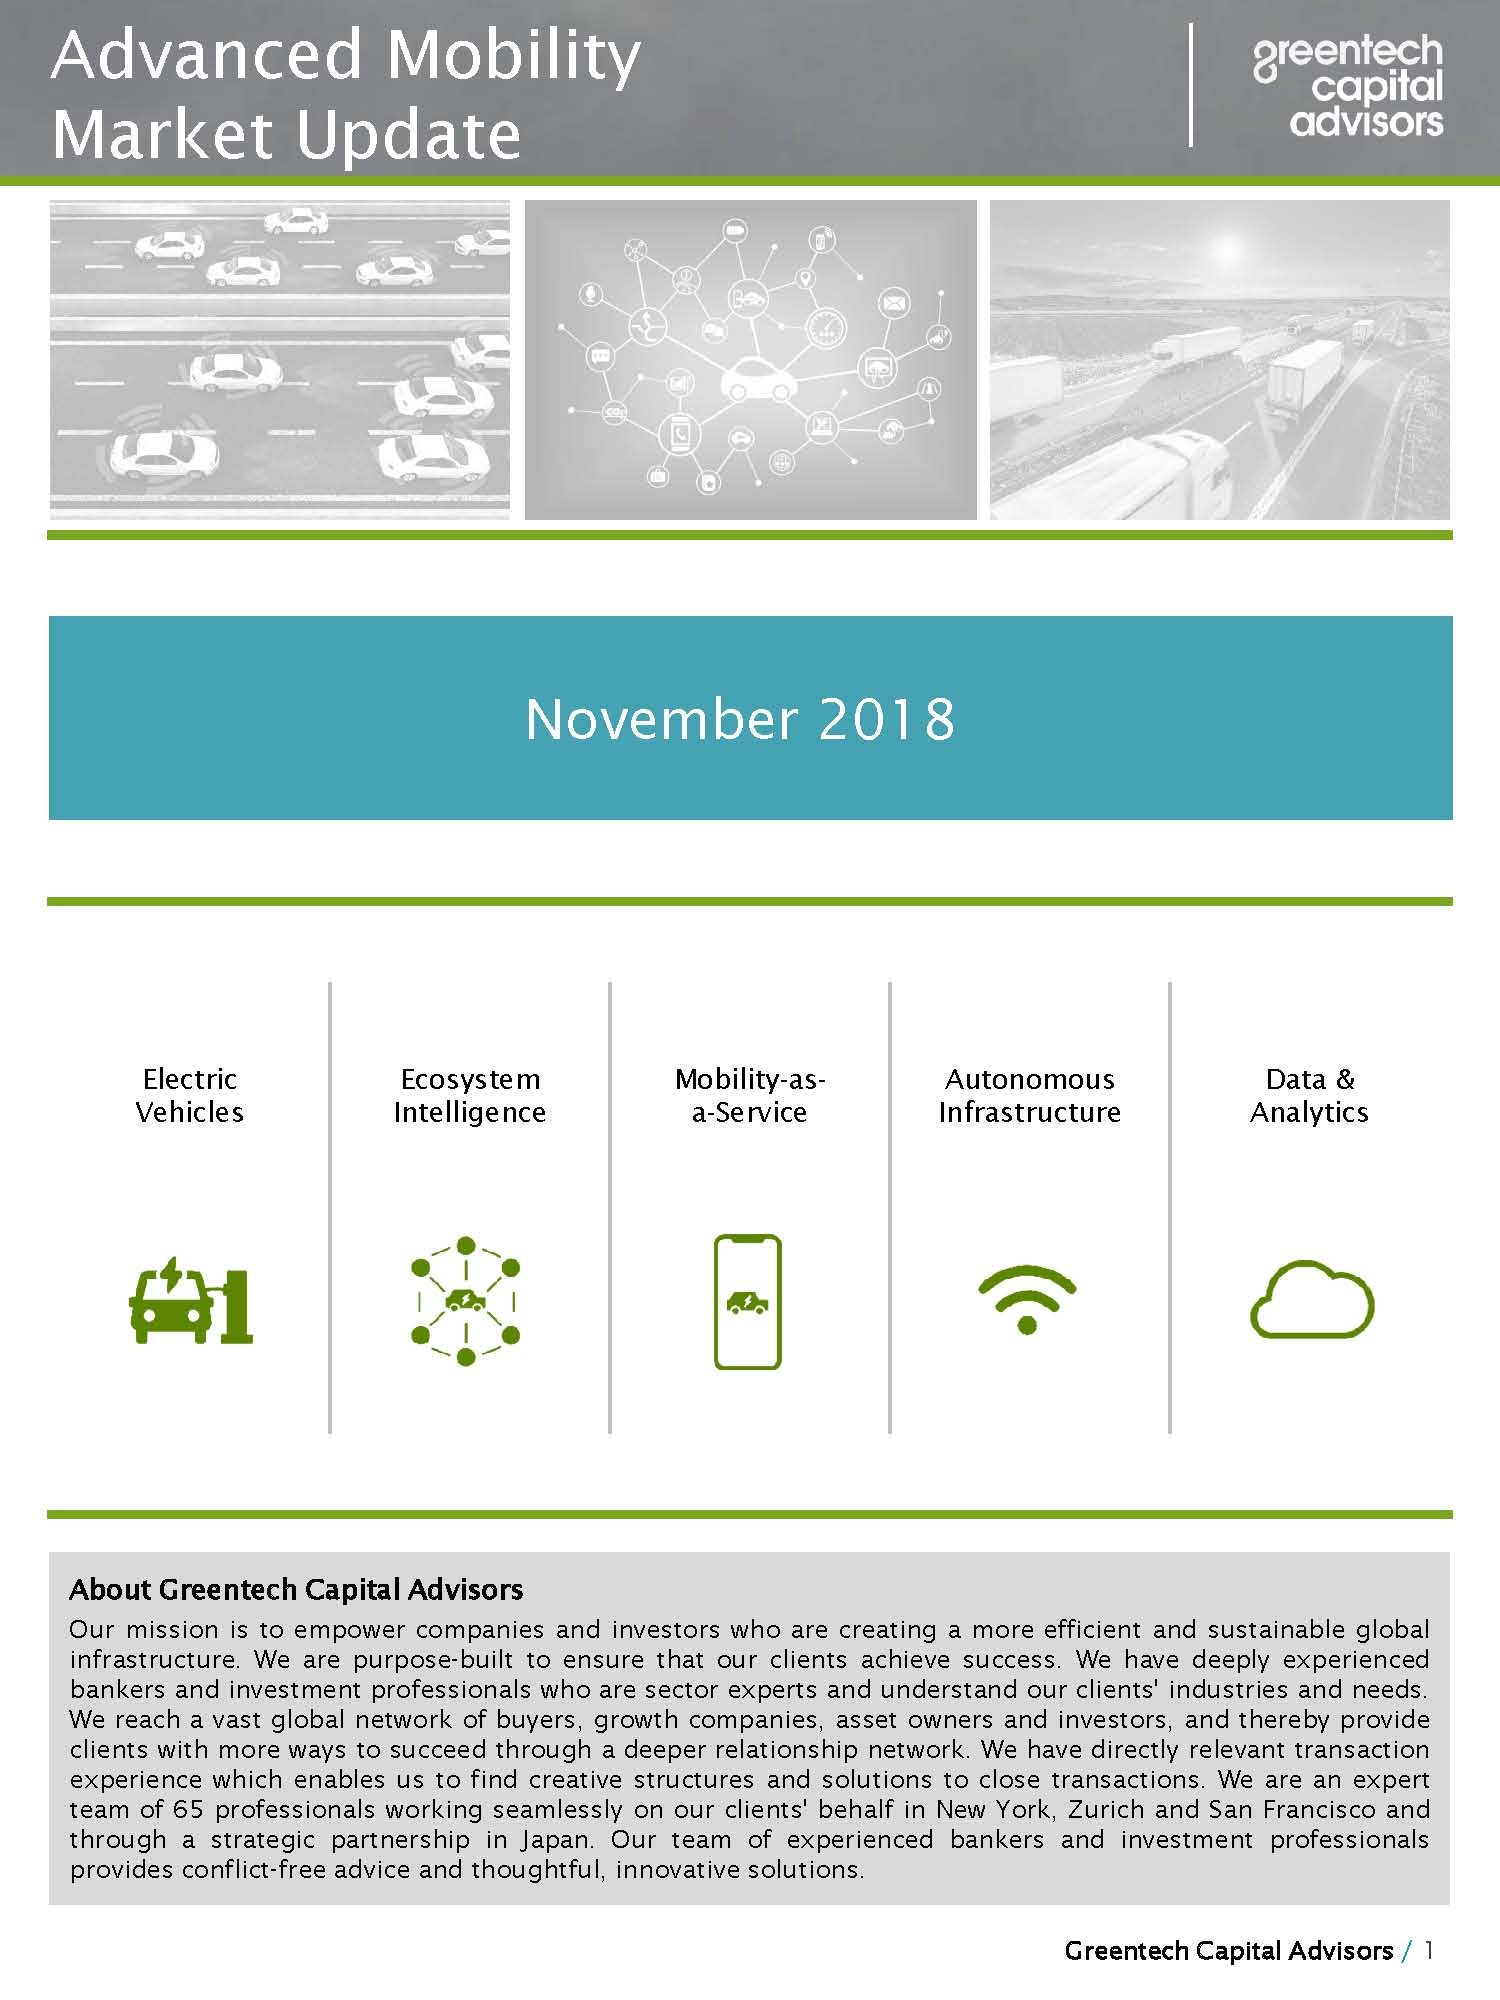 Advanced Mobility Market Update - October 2018